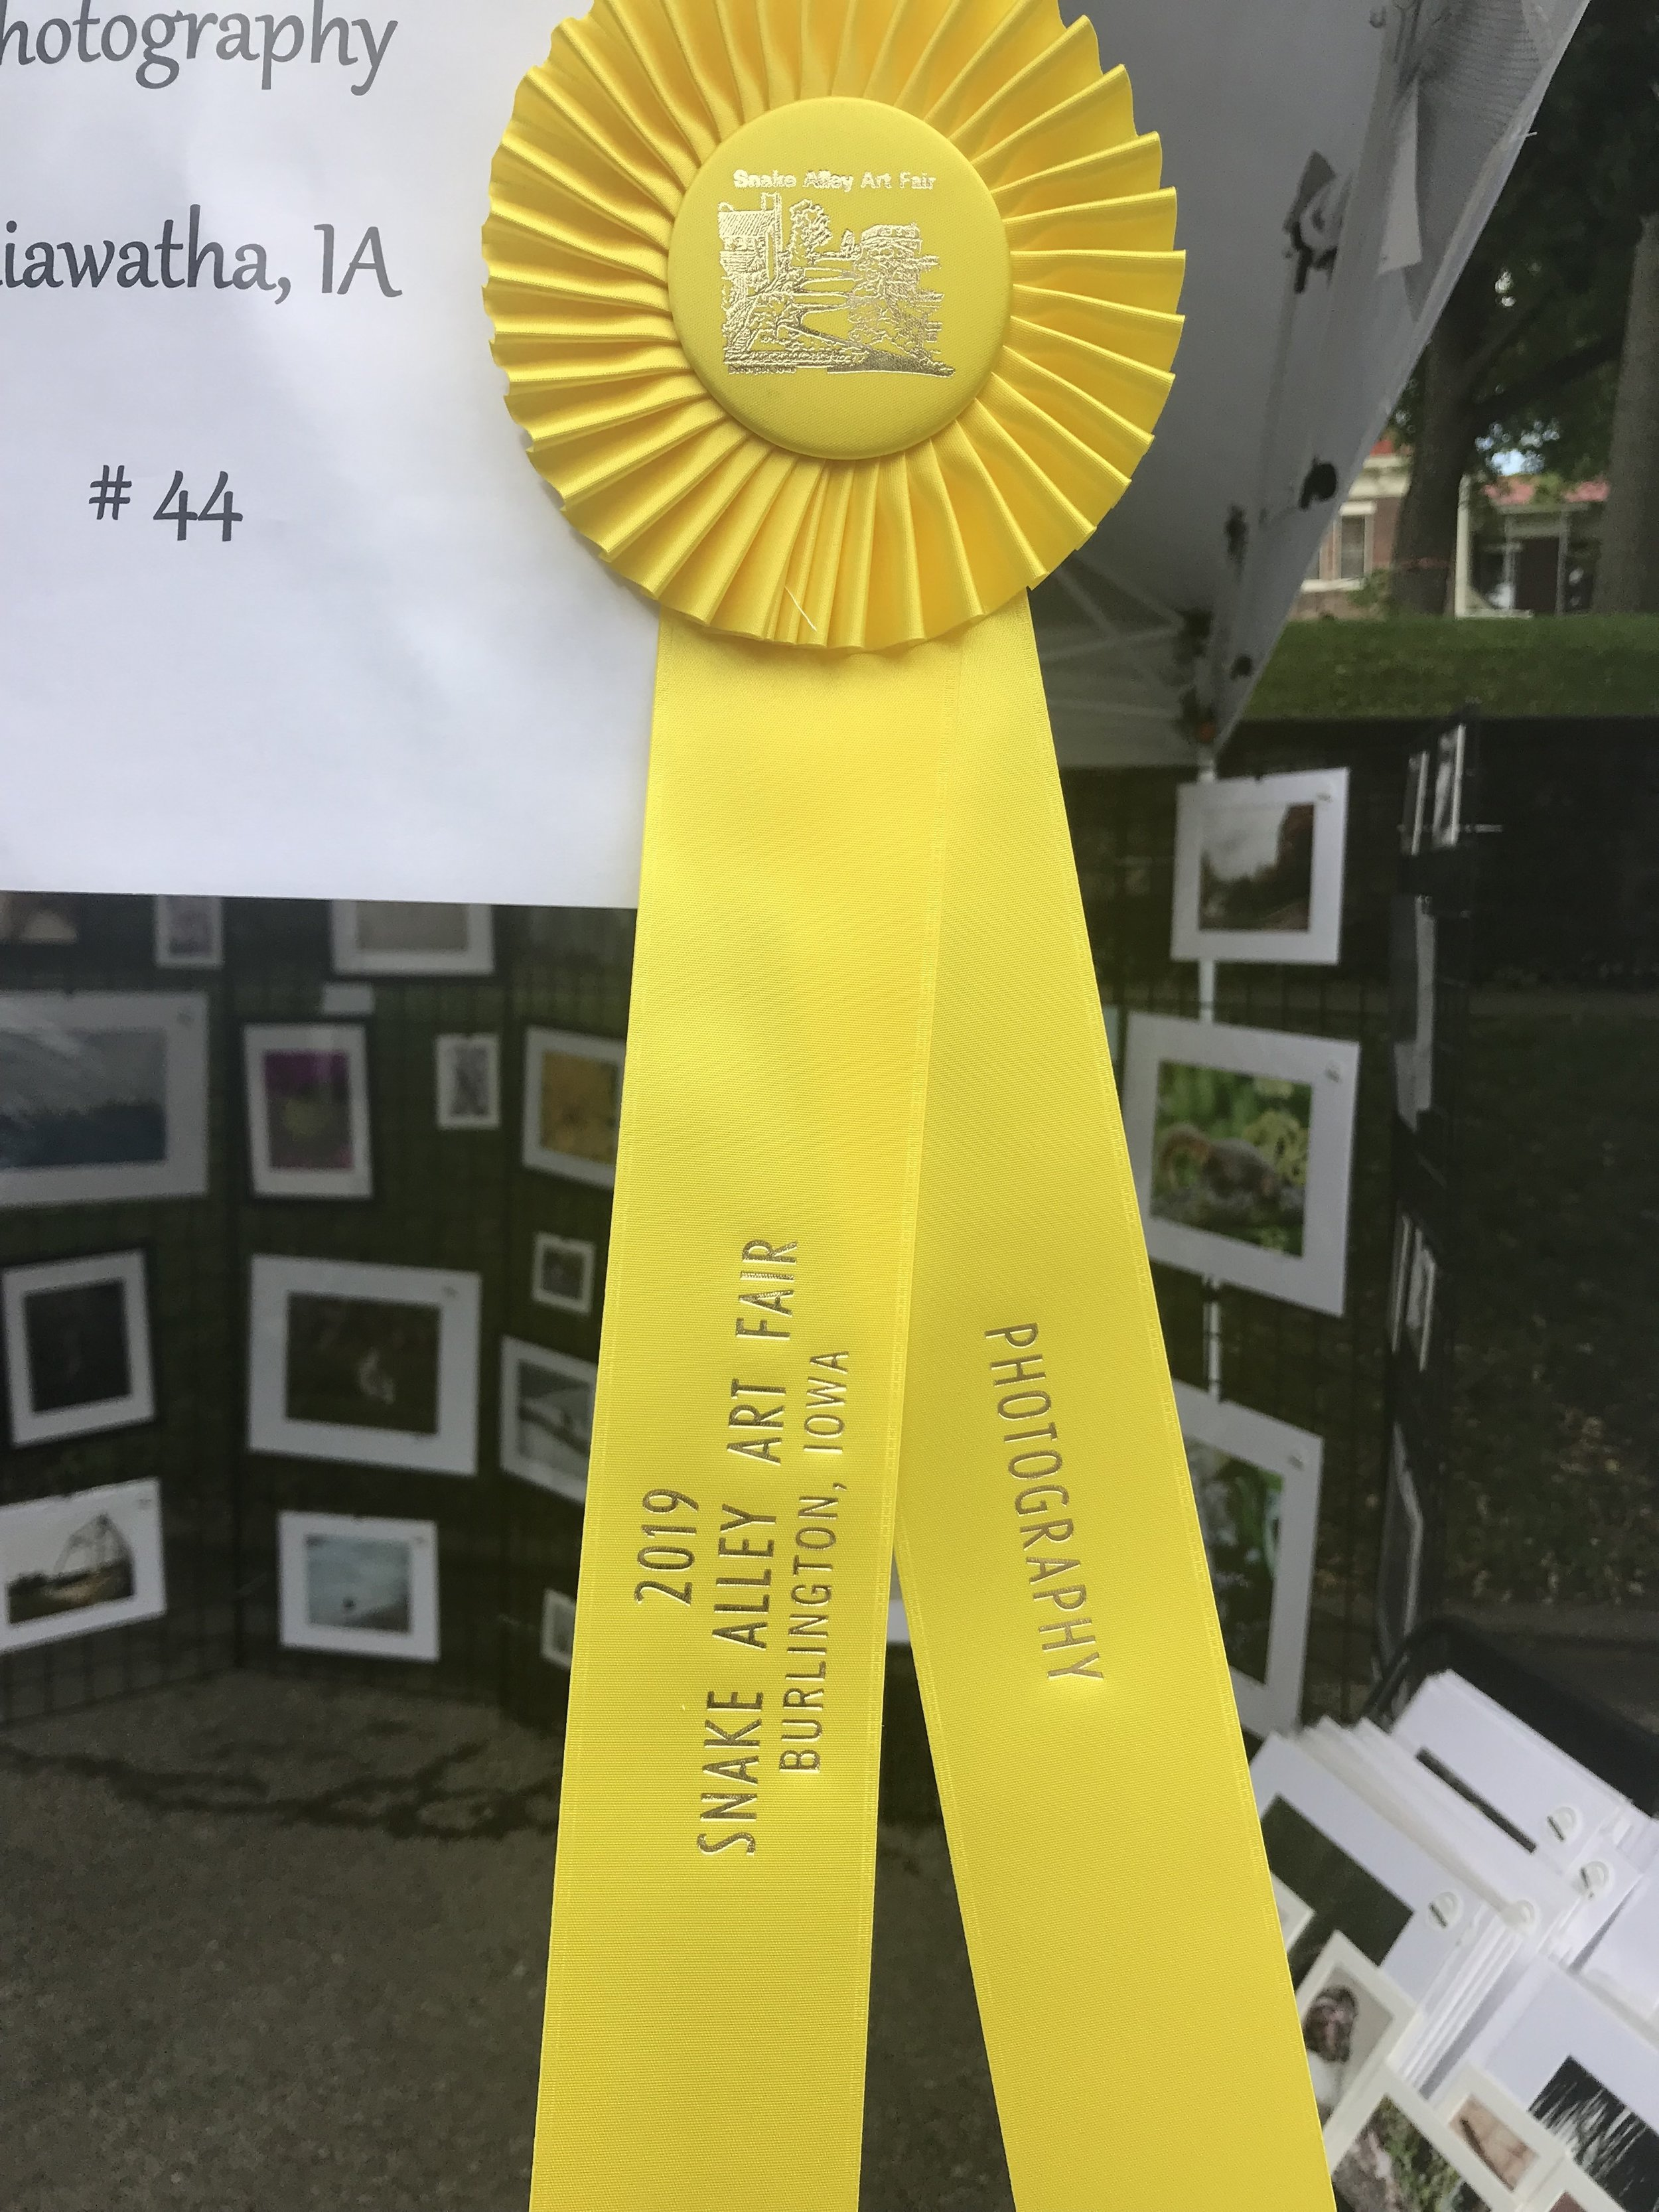 2019 3rd place photography award at snake alley art festival